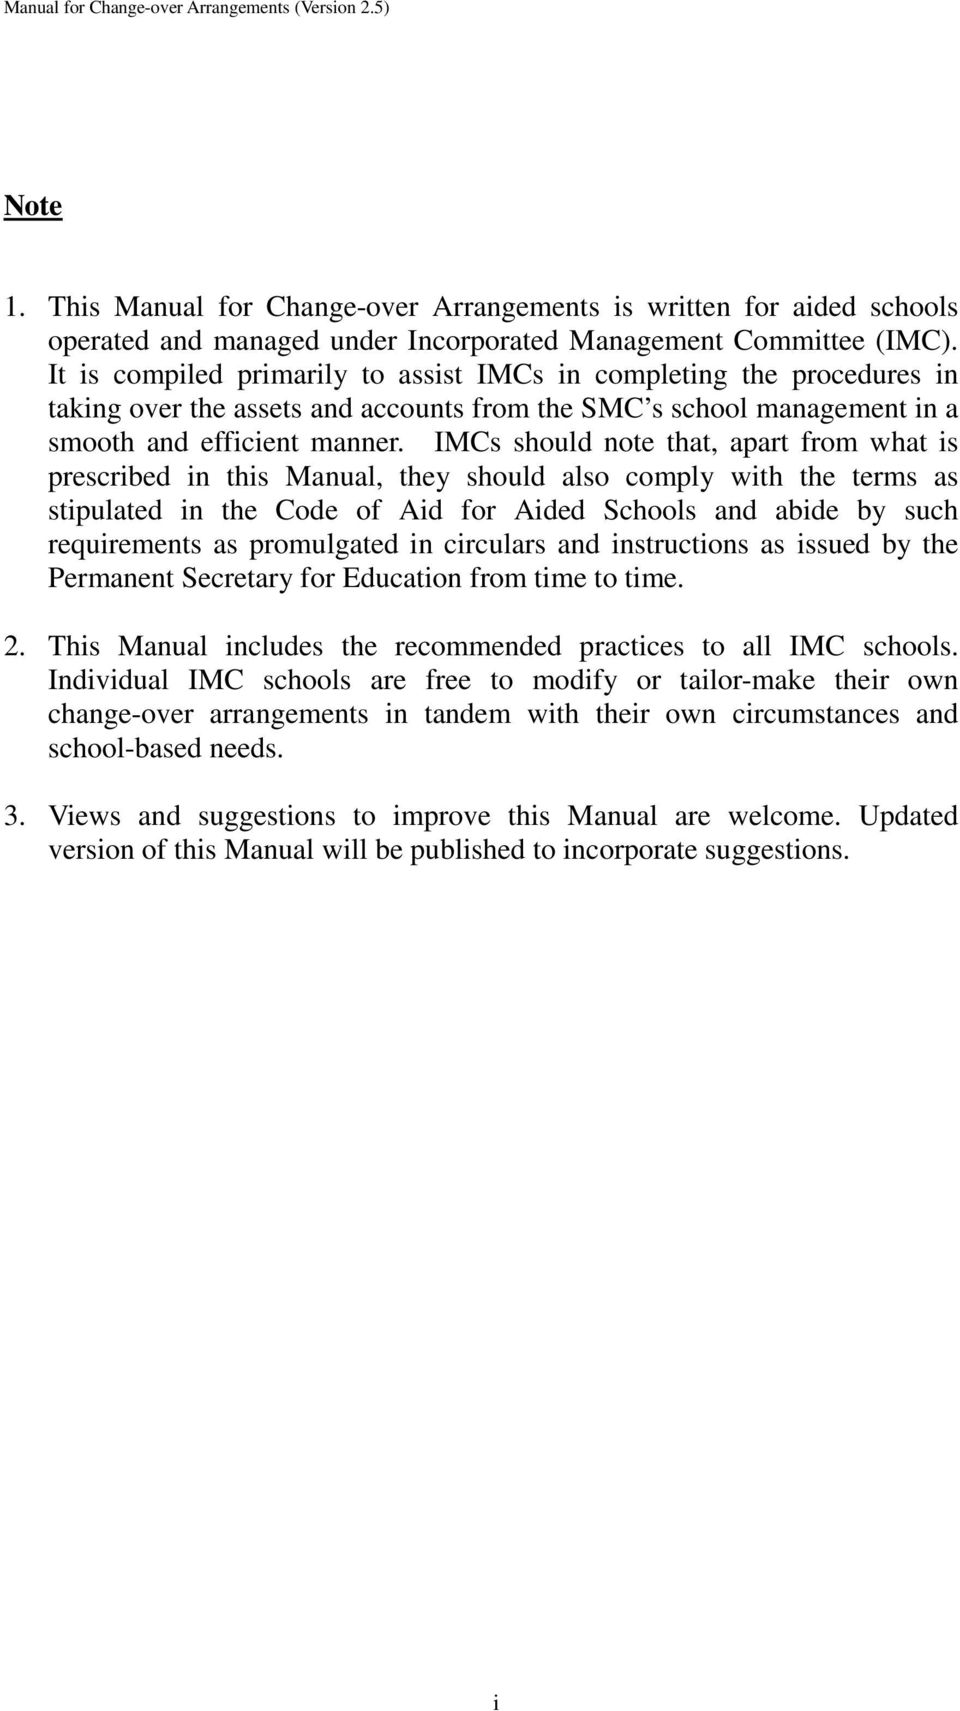 IMCs should note that, apart from what is prescribed in this Manual, they should also comply with the terms as stipulated in the Code of Aid for Aided Schools and abide by such requirements as